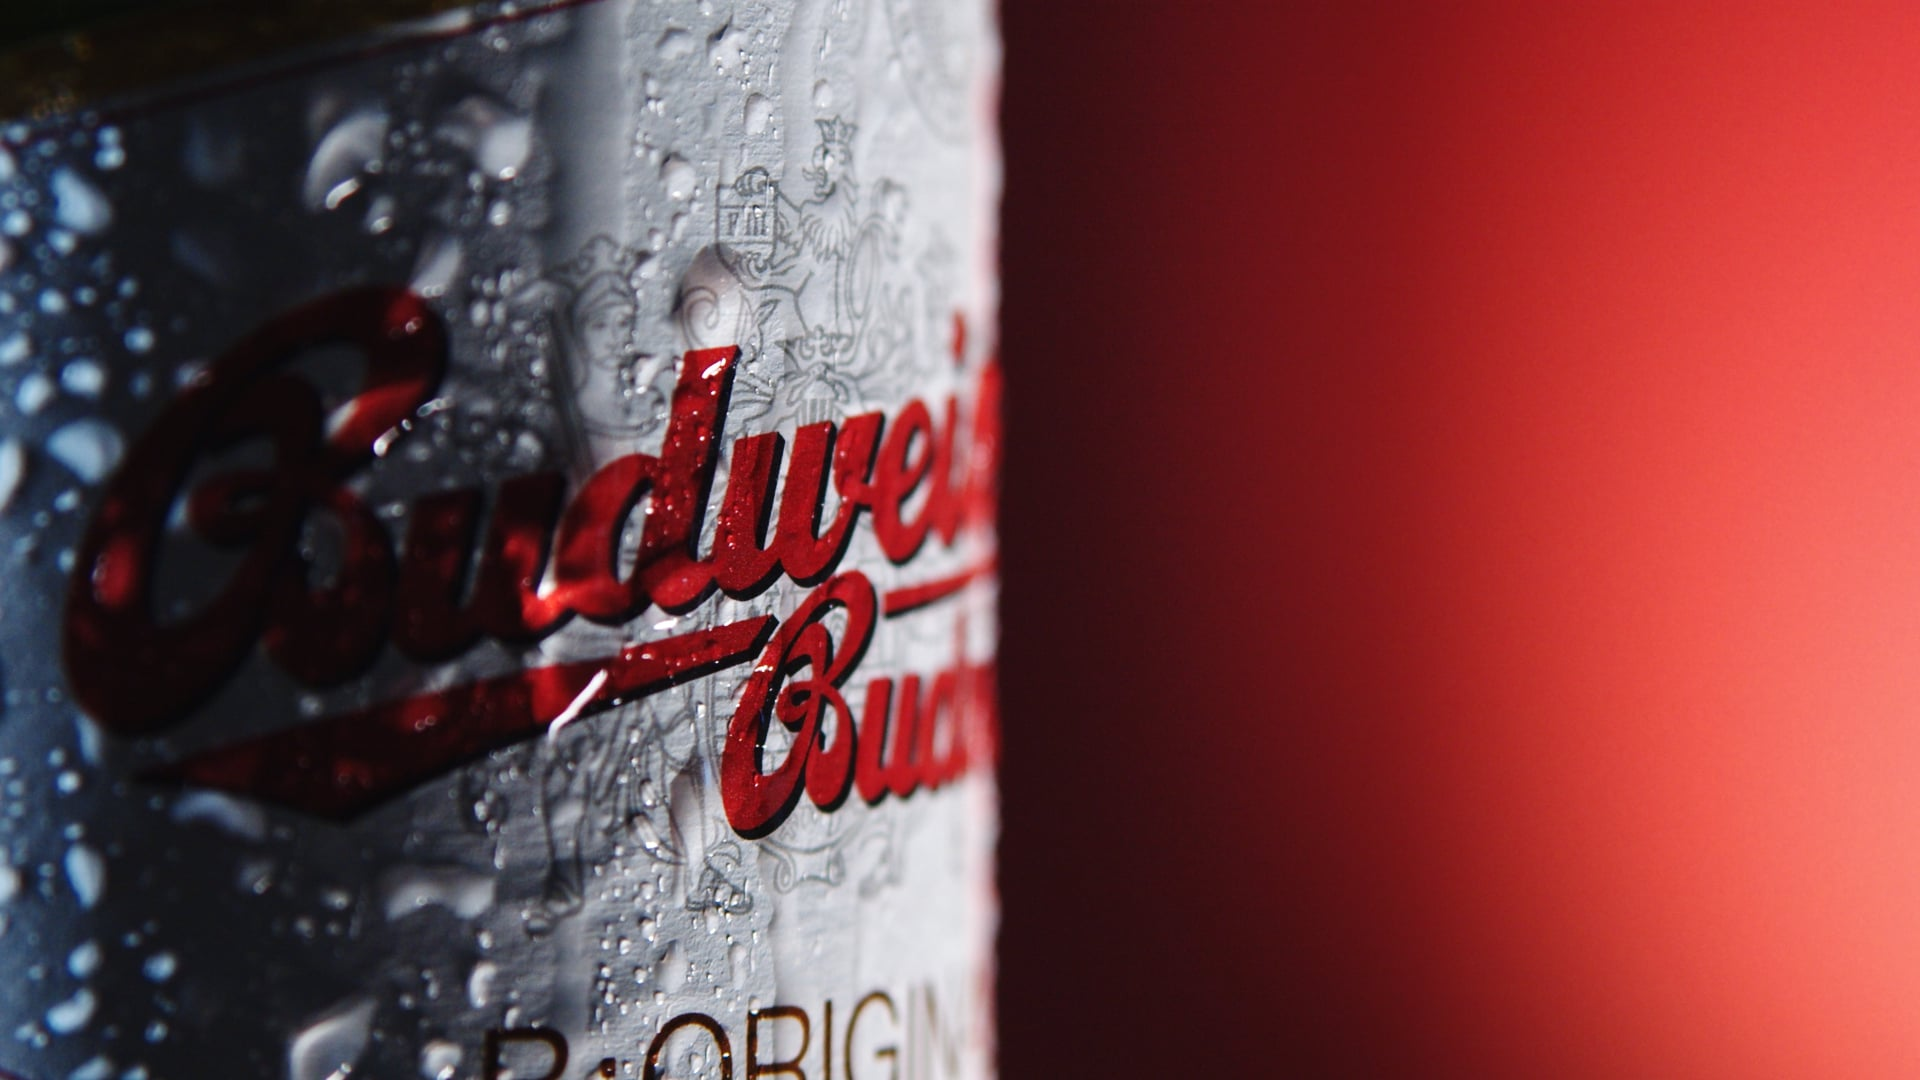 Commercial for Budweiser Beer